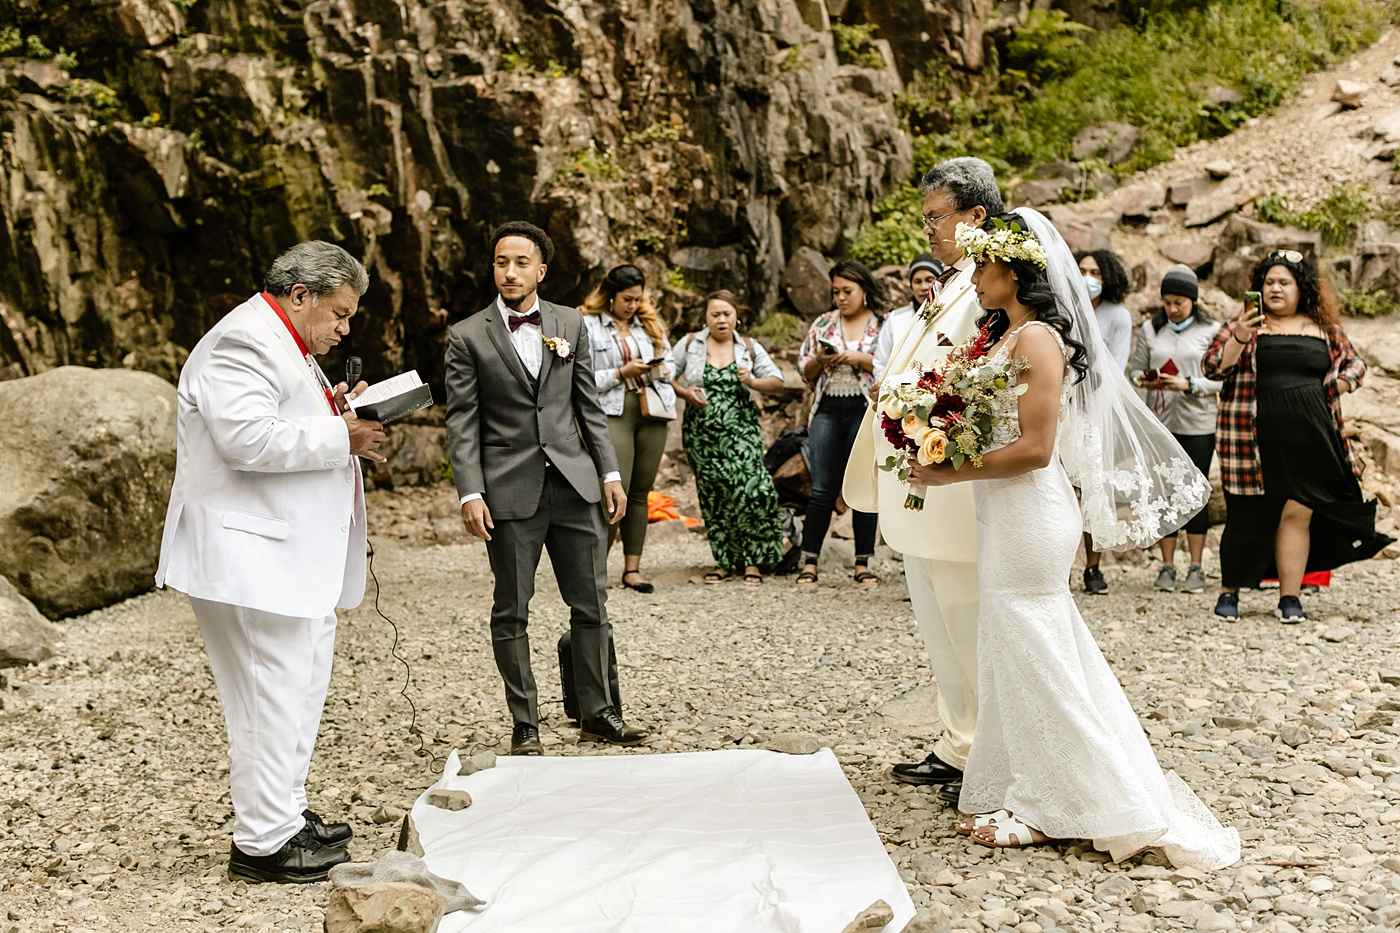 intimate ceremony at the base of a waterfall in the PNW